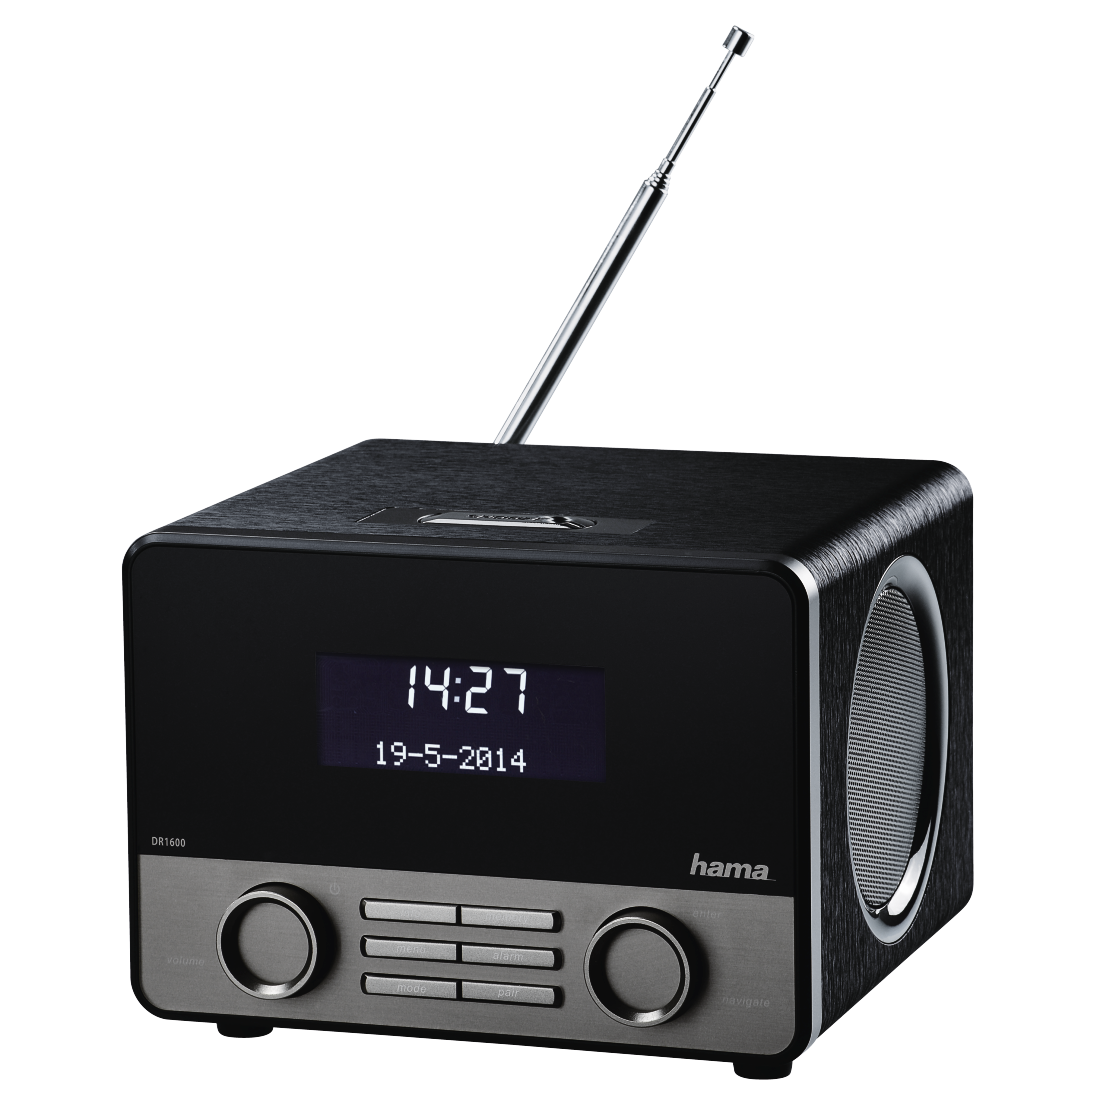 abx2 High-Res Image 2 - Hama, DR1600BT Digital Radio, DAB+/FM/Bluetooth